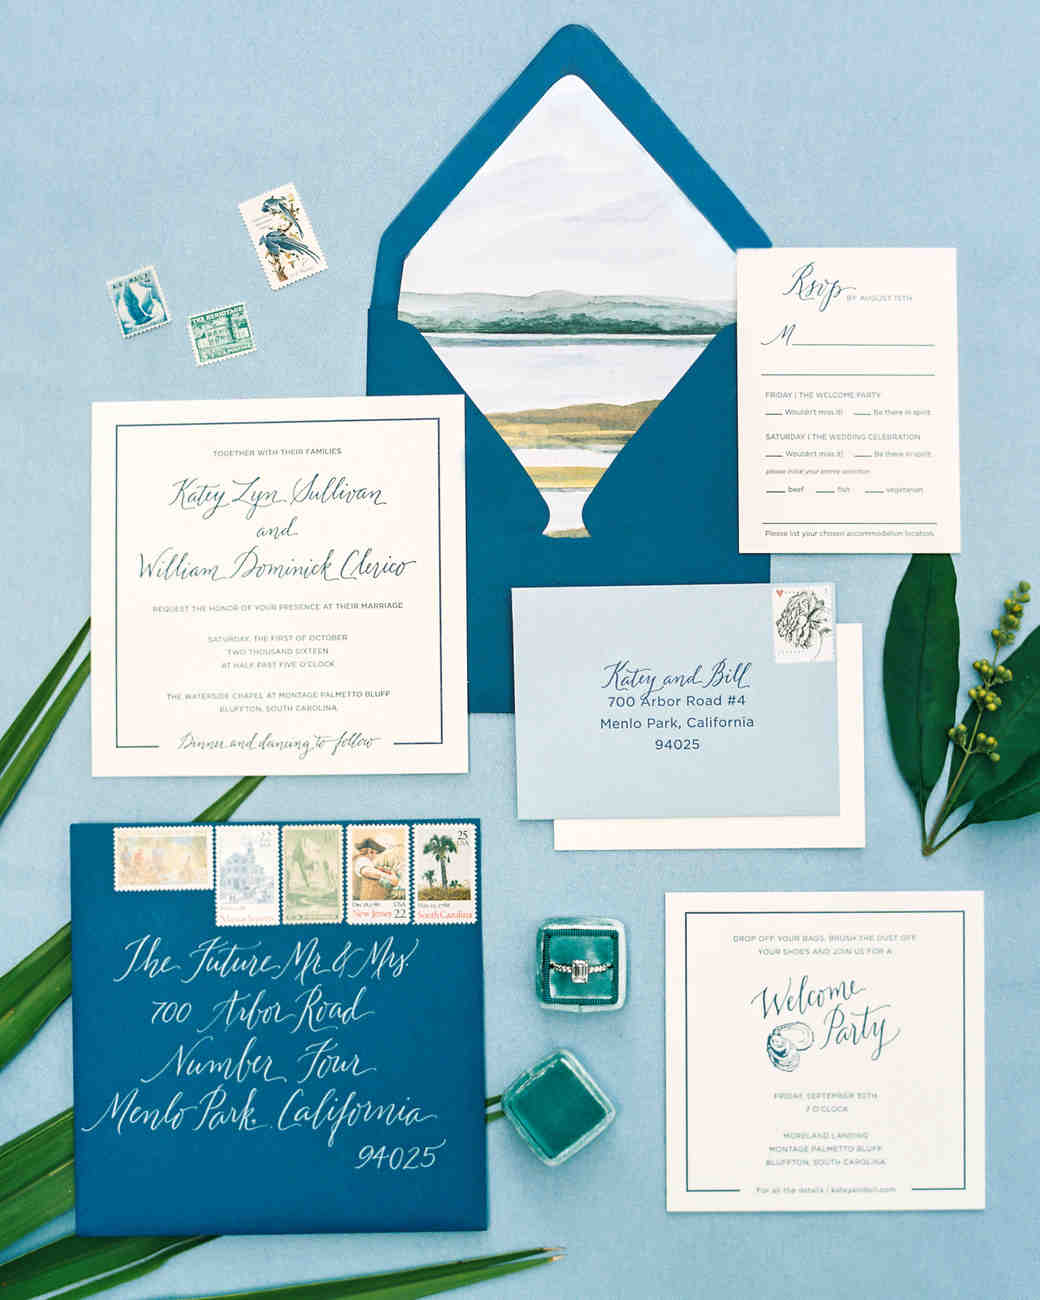 Nautical Wedding Invitations Perfect For A Waterfront Celebration